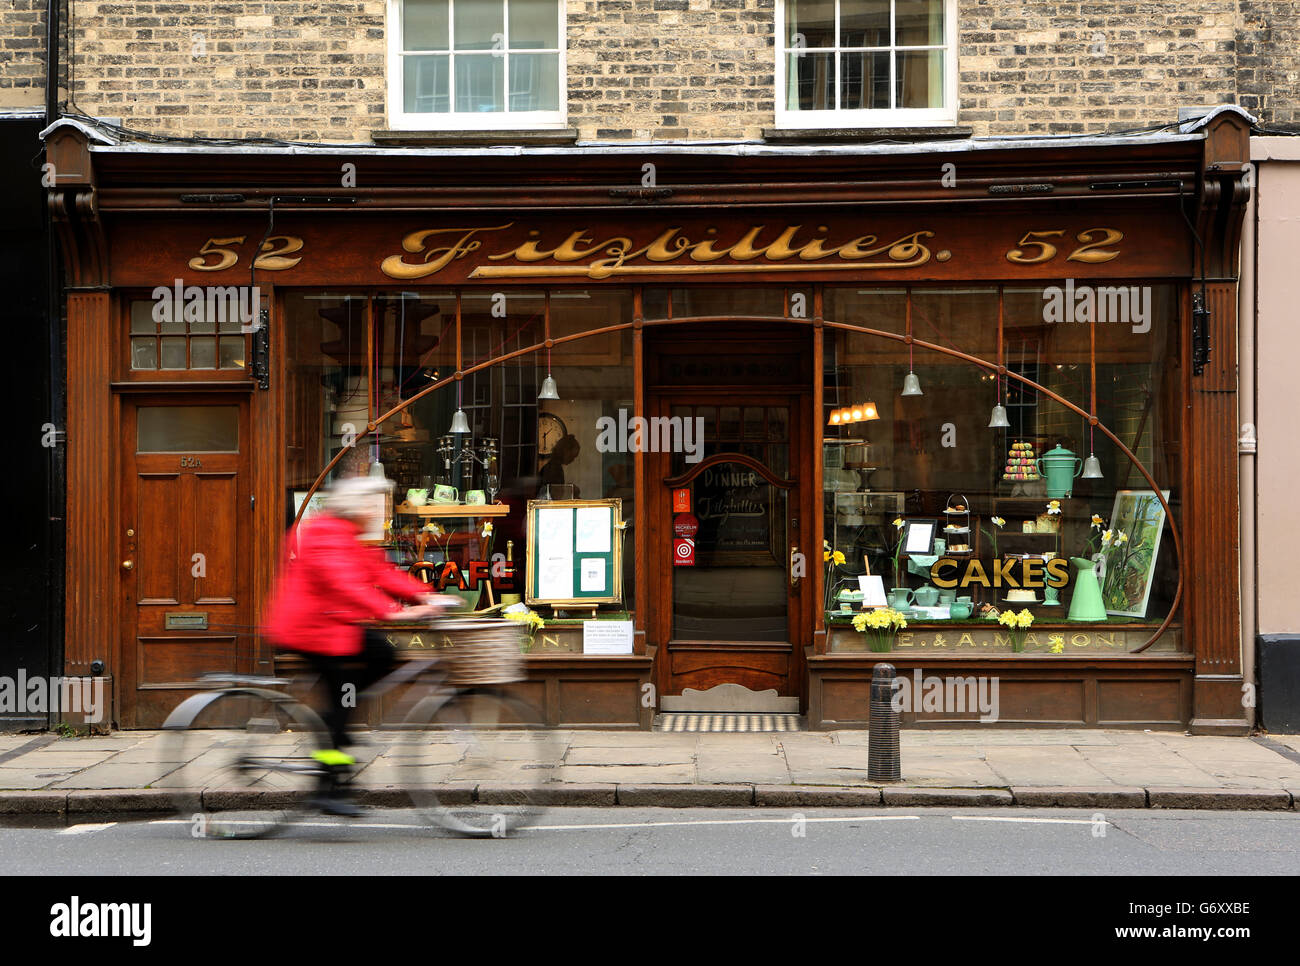 A cyclist rides past Fitzbillies cake shop in Cambridge. Stock Photo